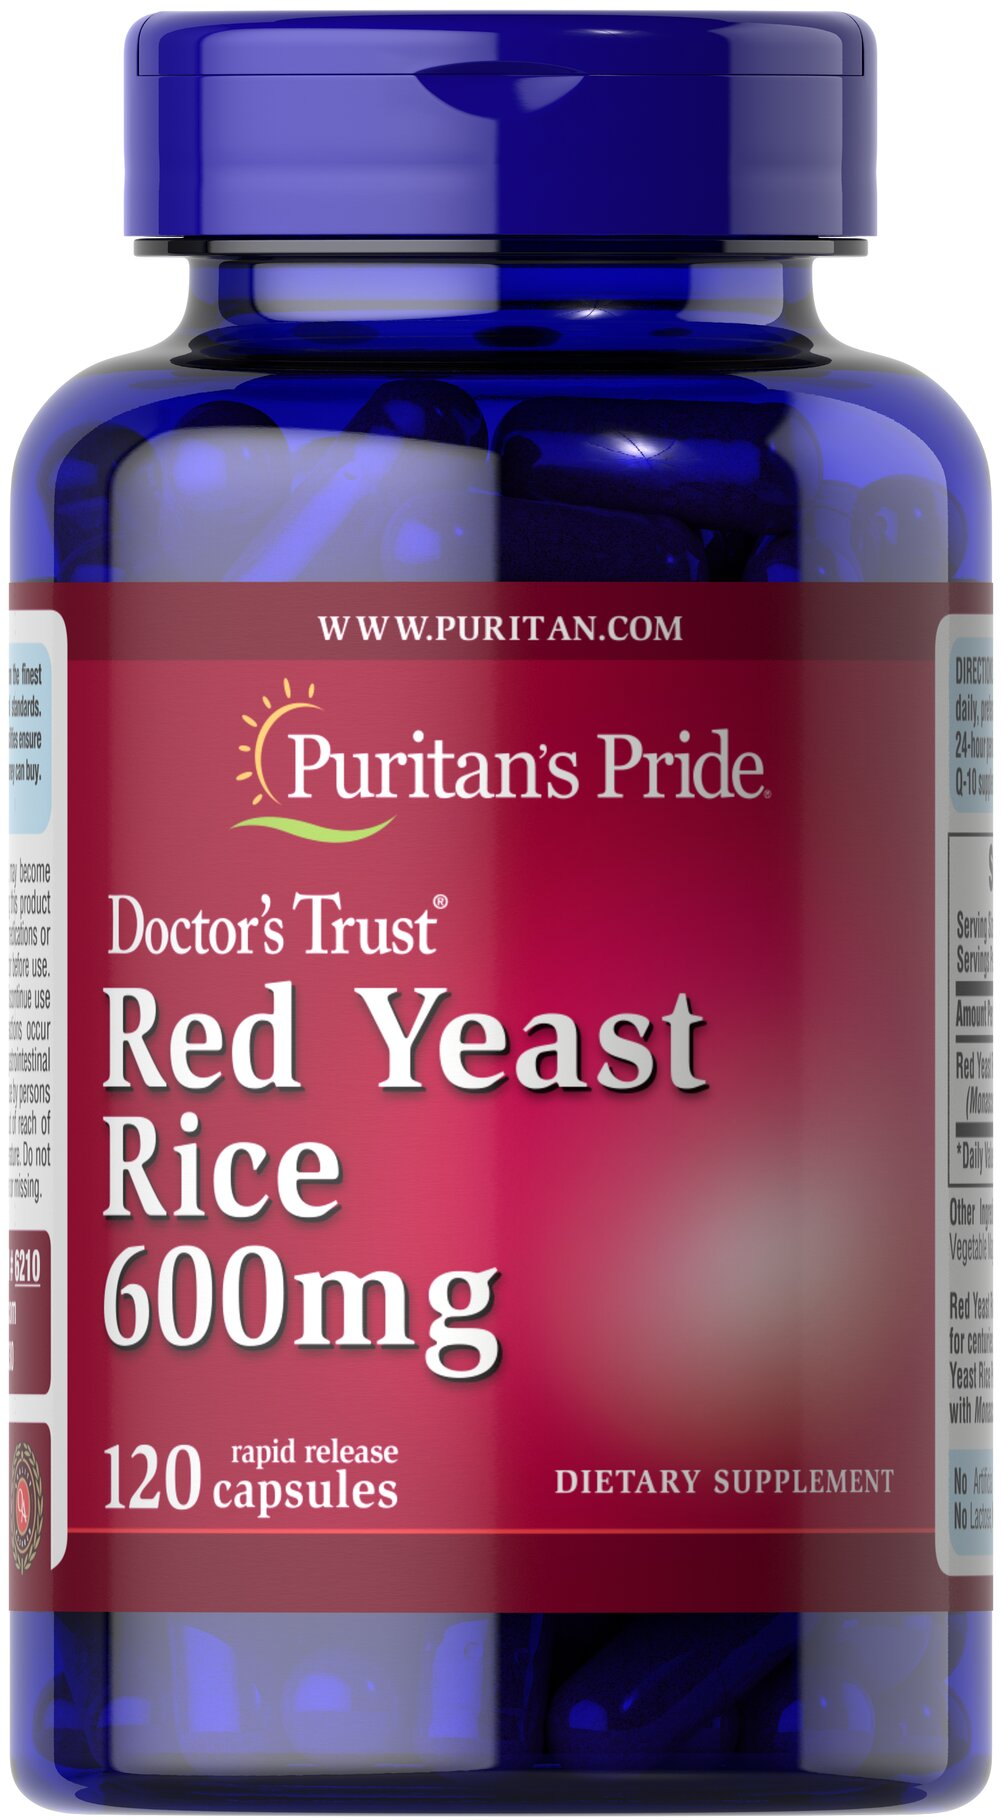 Red Yeast Rice 600 mg <p>Red Yeast Rice has been a staple food of the traditional Chinese diet for centuries. Valued as a main food source as well as for other uses, Red Yeast Rice can be a wonderful addition to your diet.**  Two capsules contain 1200 mg of Red Yeast Rice Powder from the Chinese botanical Monascus purpureus.</p> 120 Capsules 600 mg $16.99